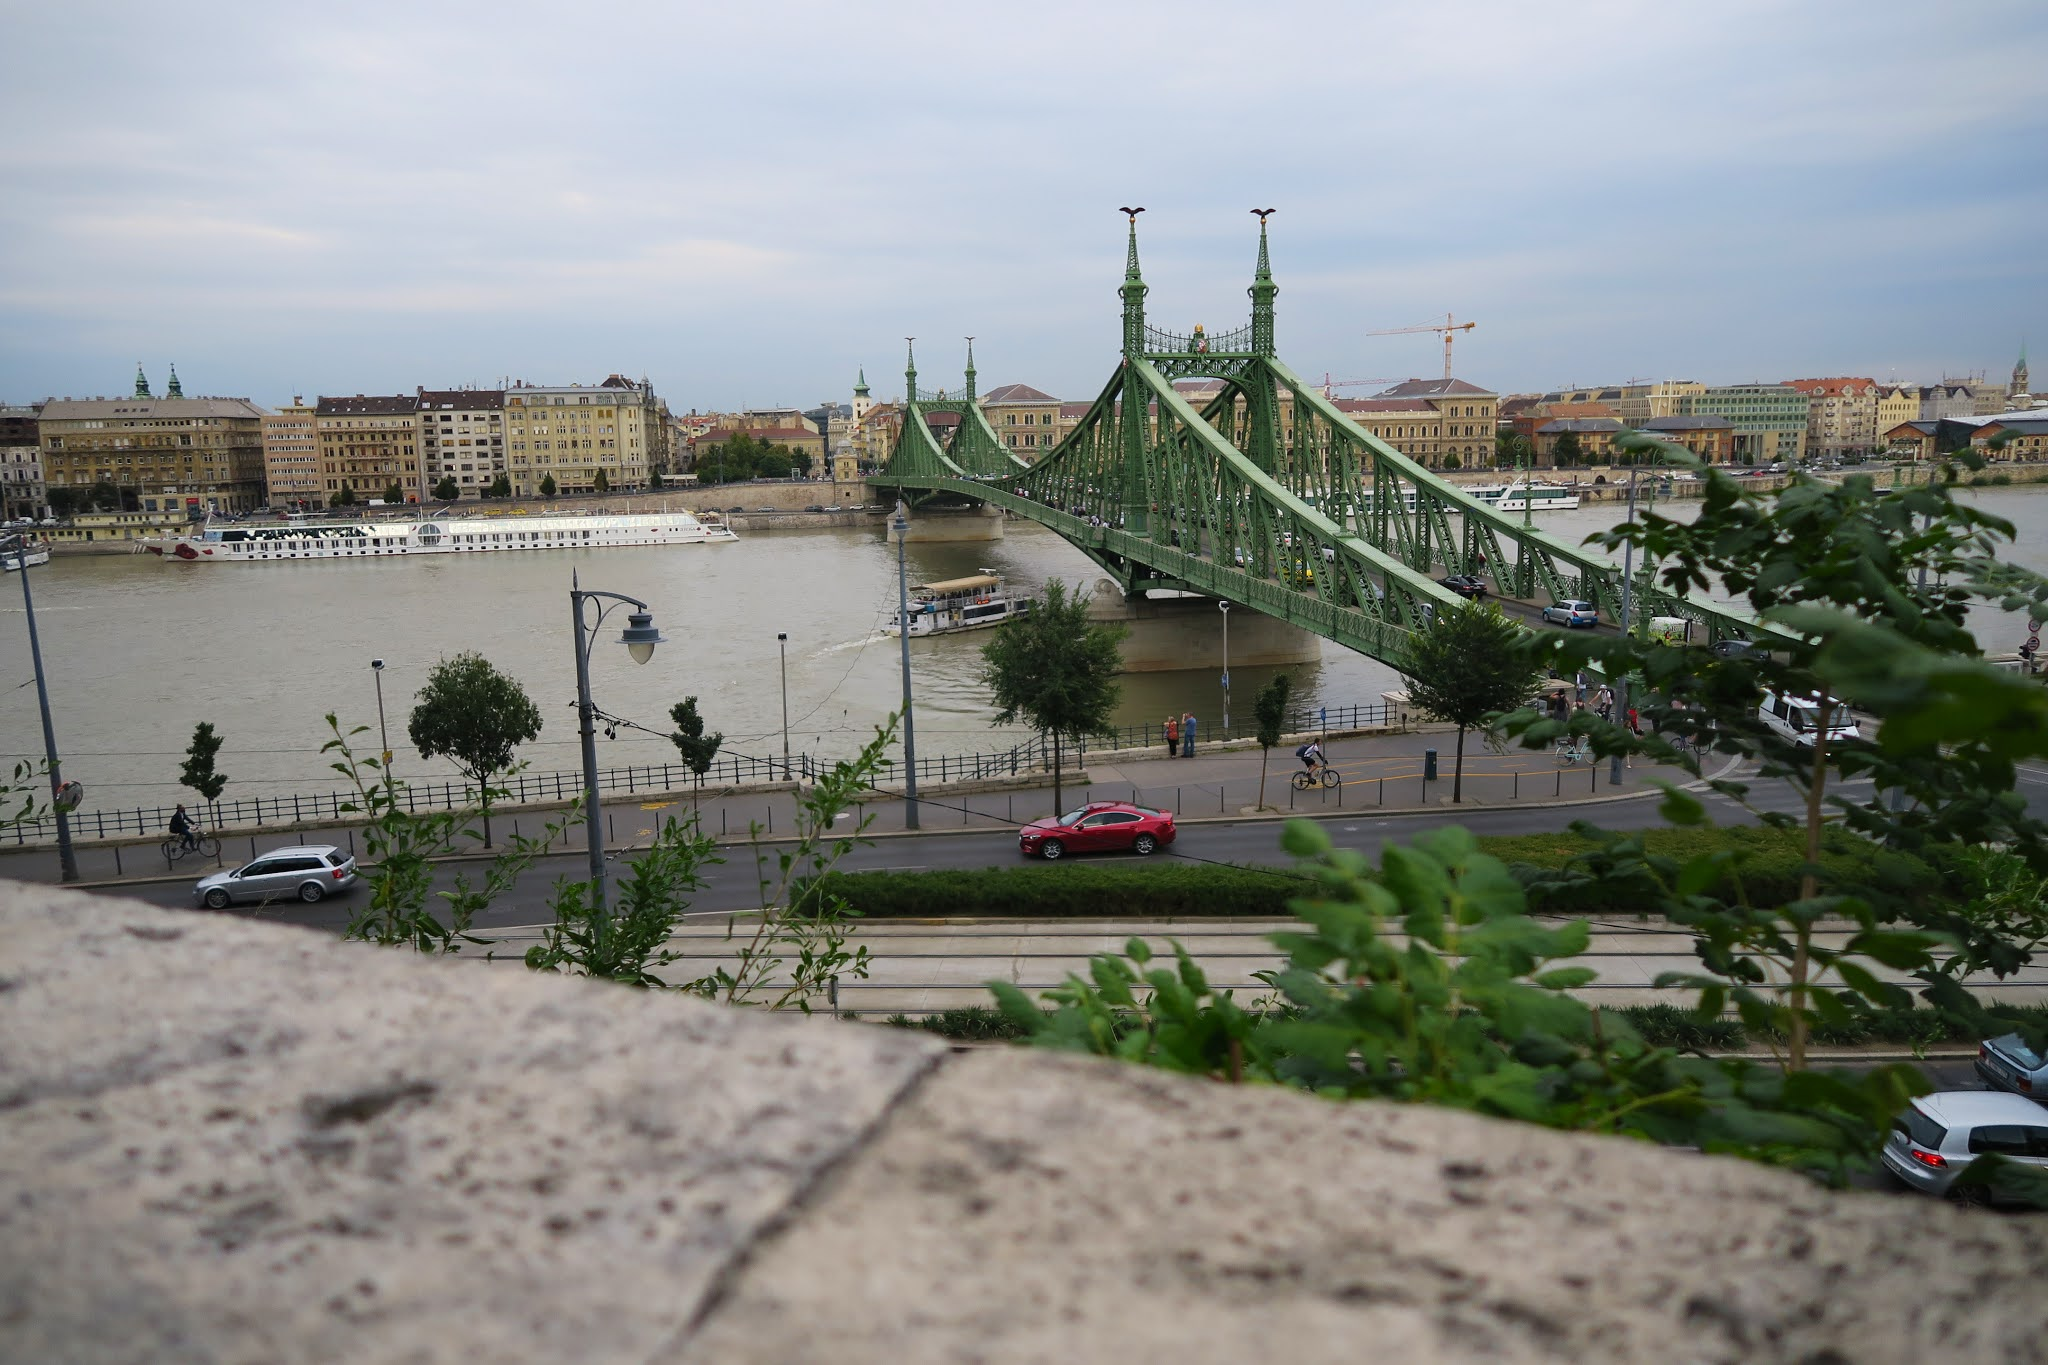 Looking across the Danube at Liberty Bridge in Budapest